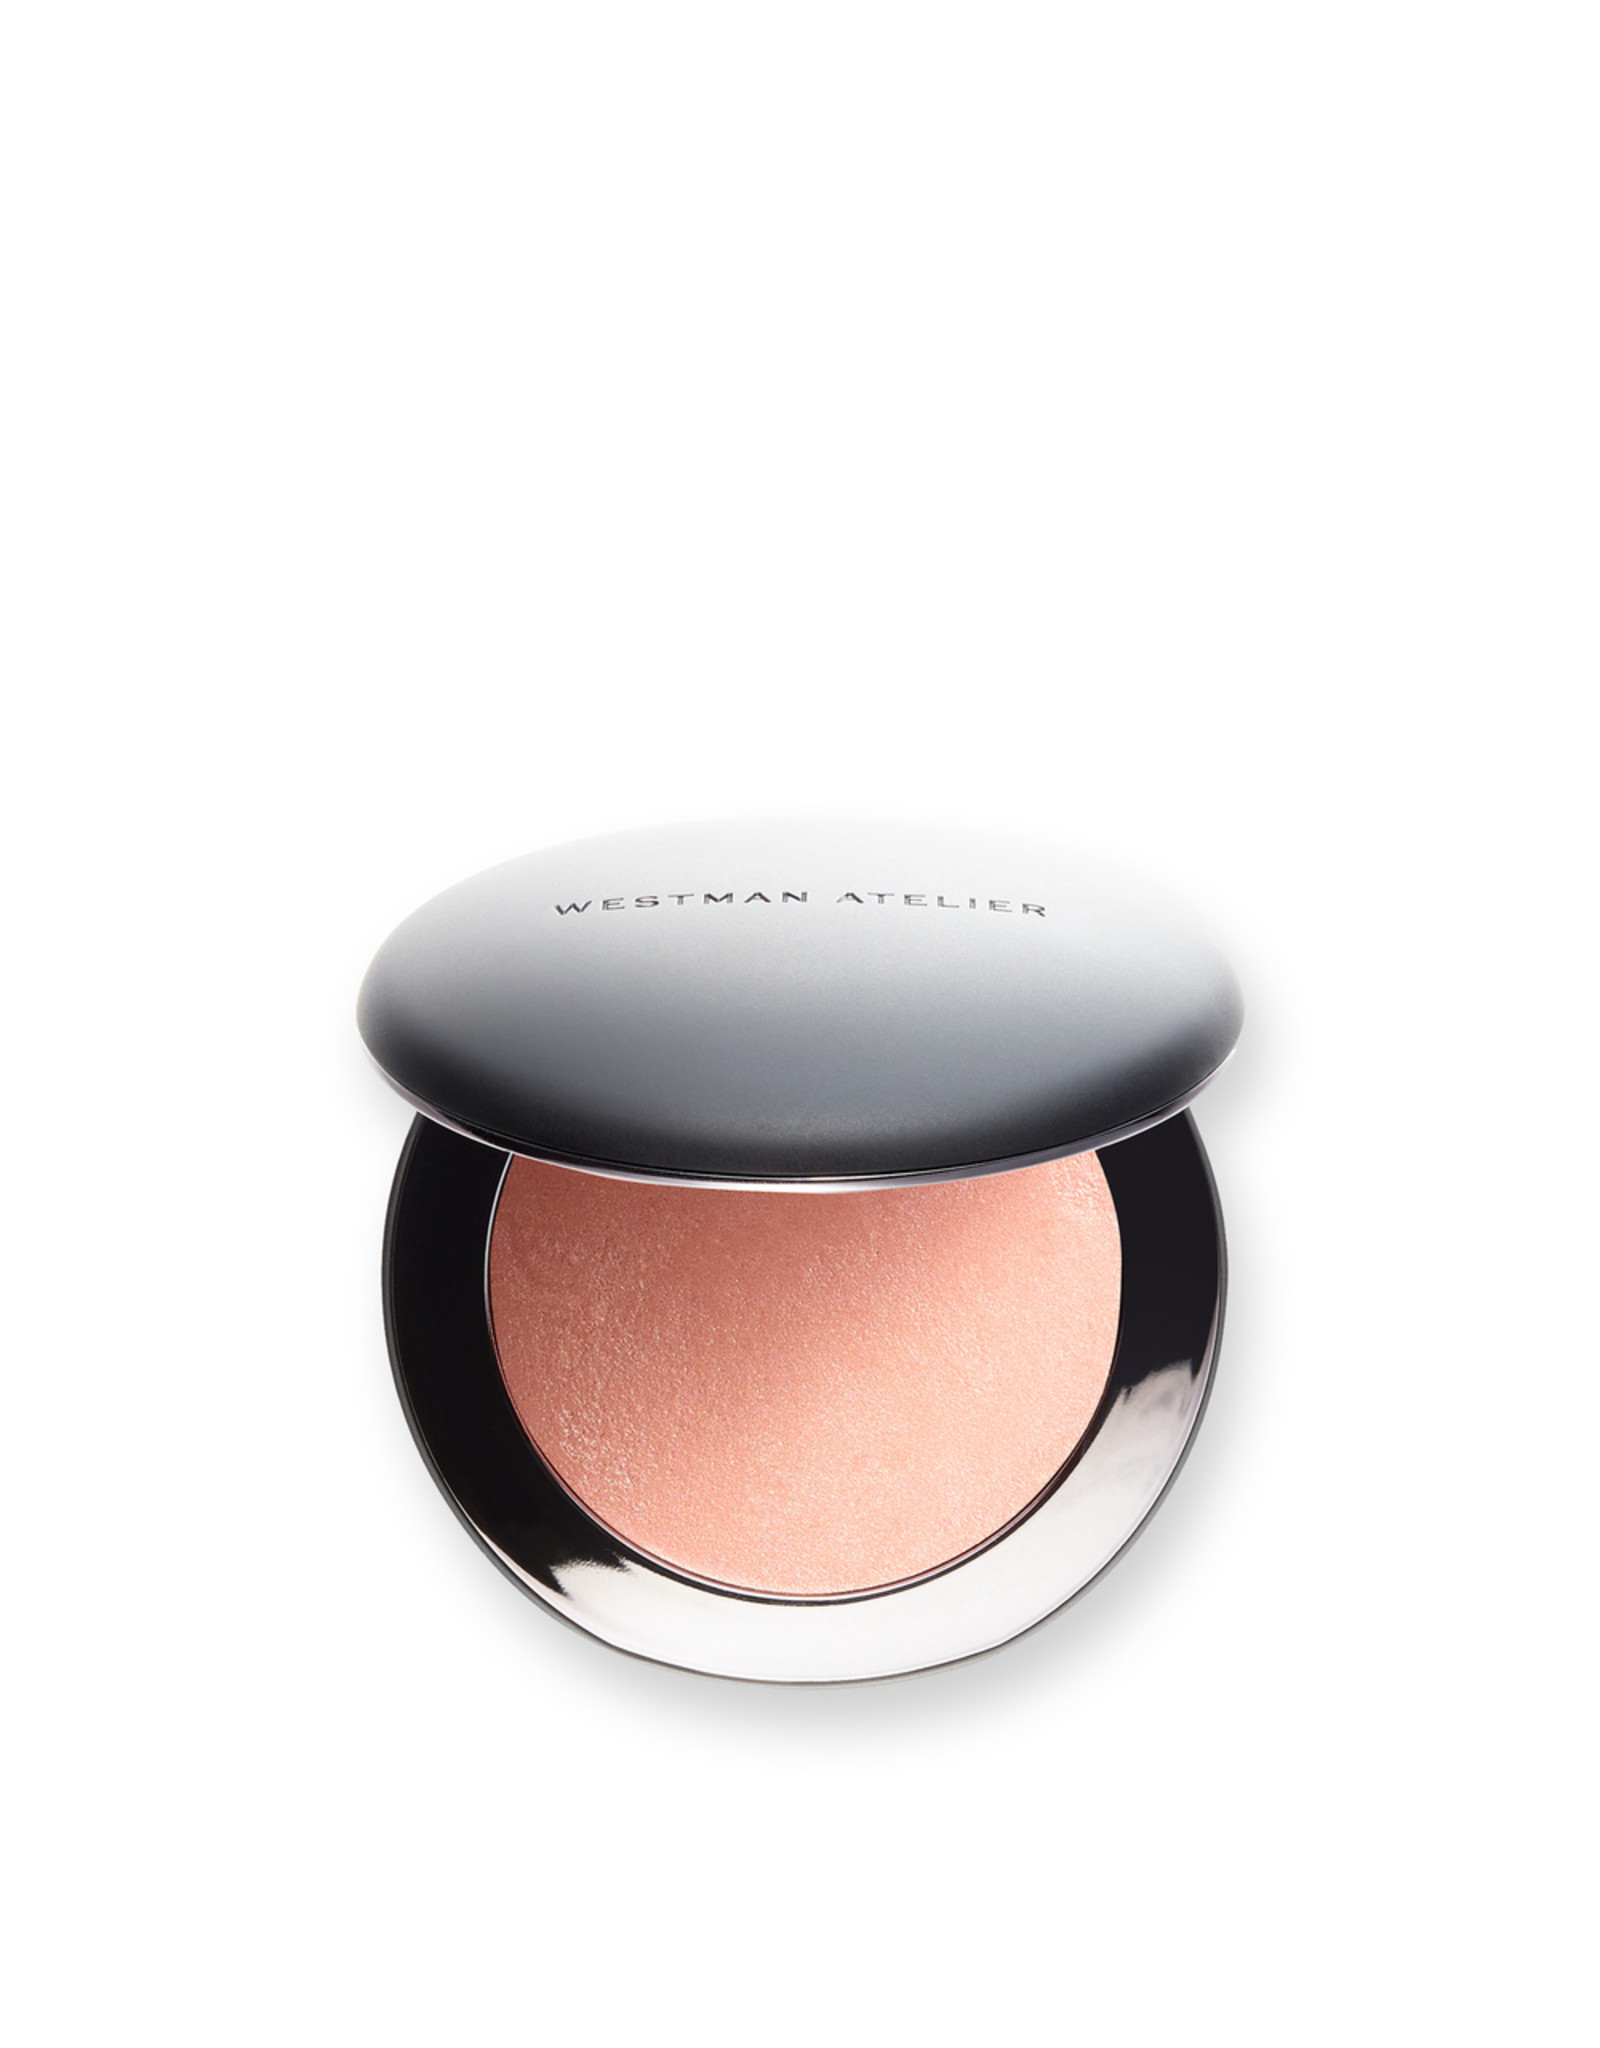 Westman Atelier Westman Atelier Super Loaded Tinted Highlighter (Color: Peau de Peche)